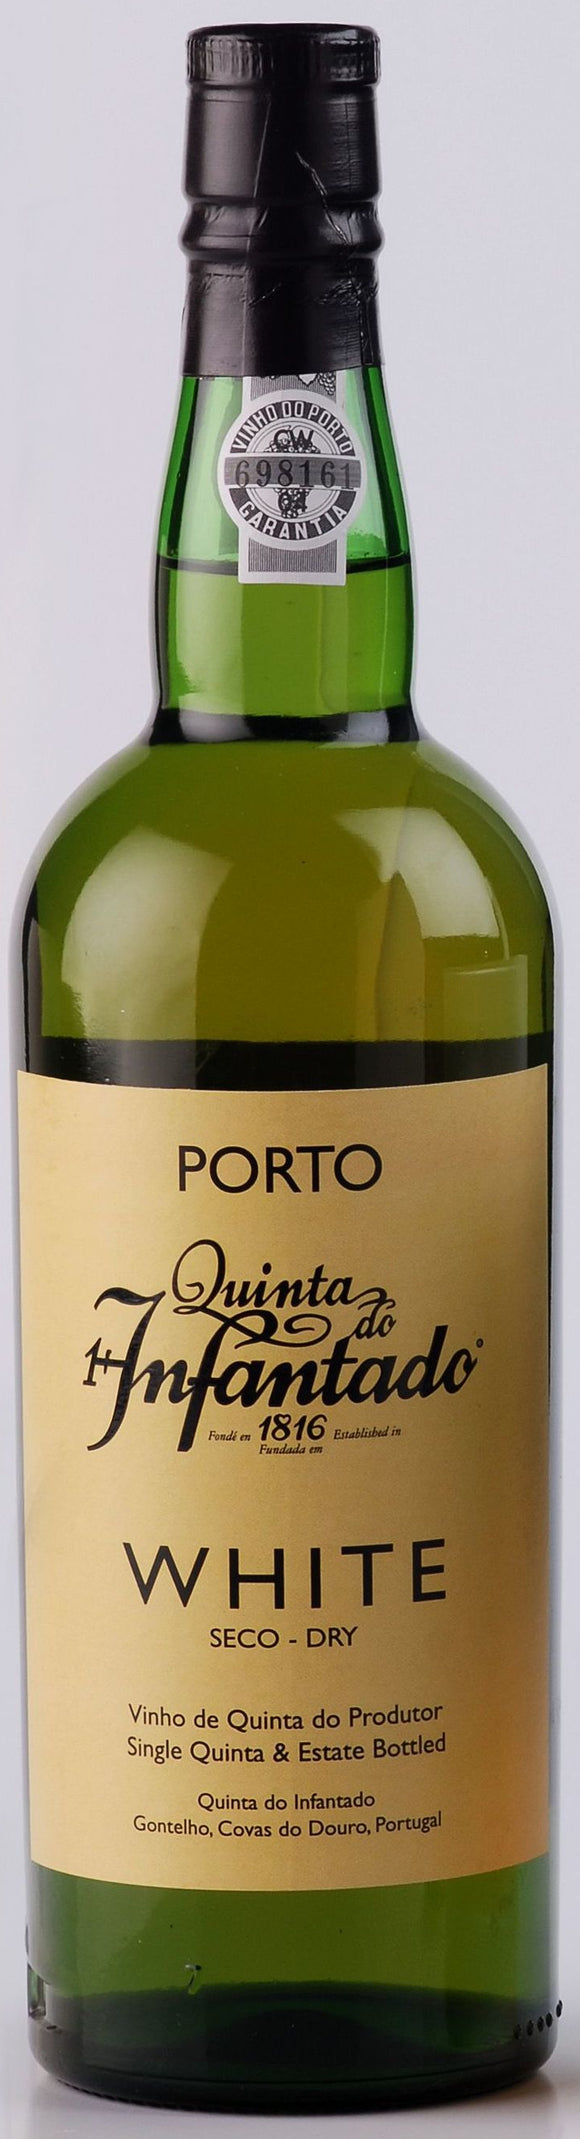 Quinta do Infantado White Port